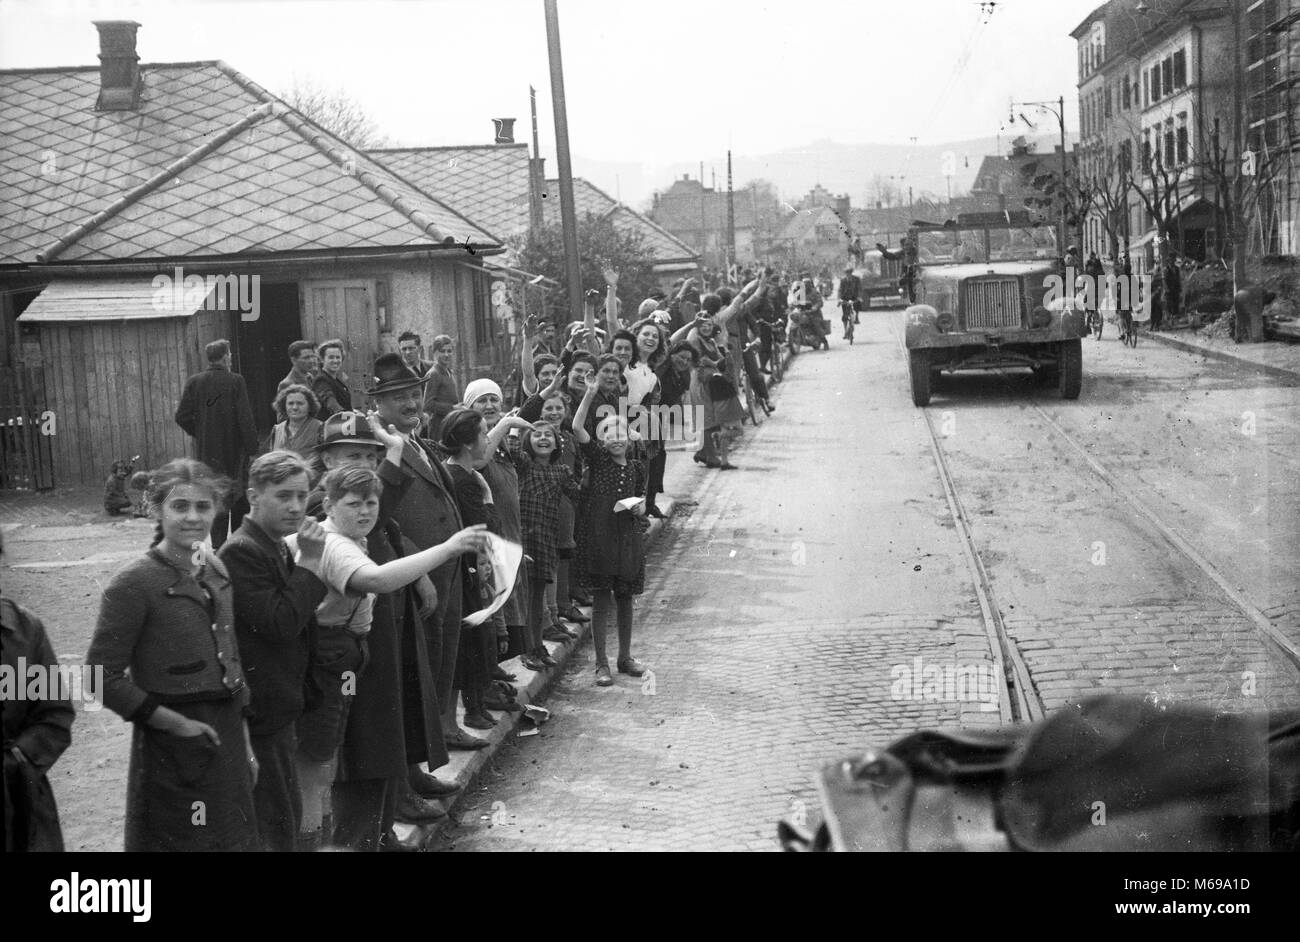 Local people waving to German troops in Yugoslavia April 1941 during WW2 German invasion of Yugoslavia. - Stock Image